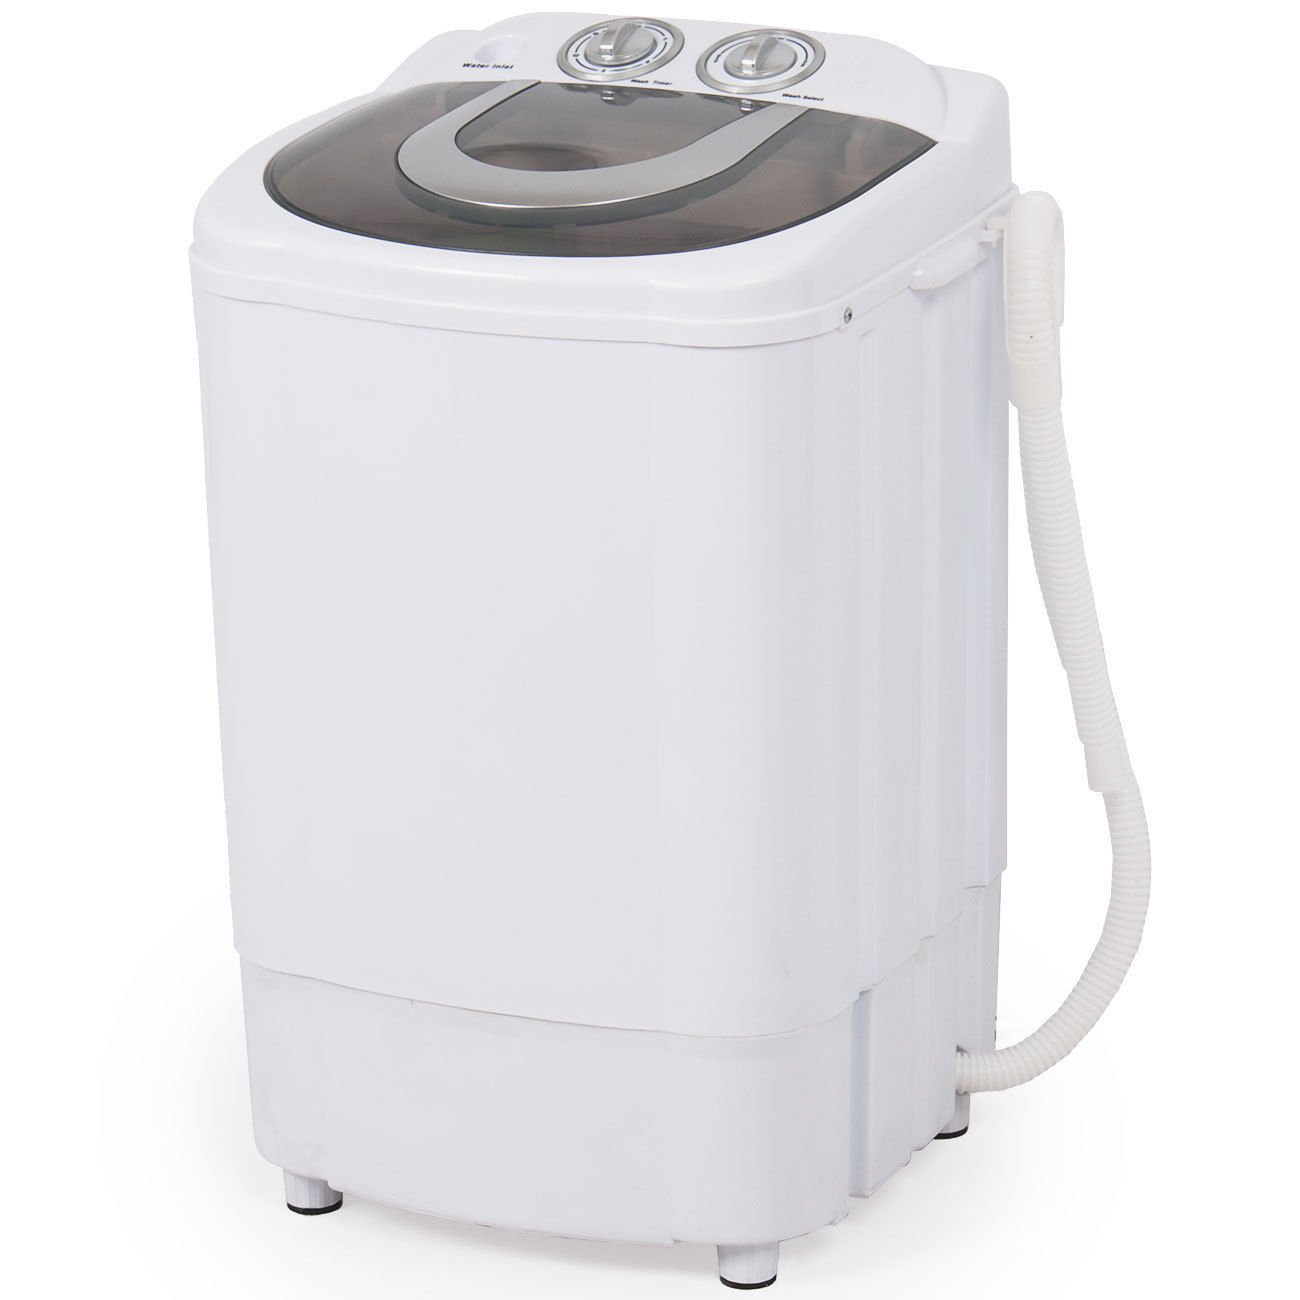 tavlar mini portable washing machine spin wash 88lbs capacity compact laundry washer